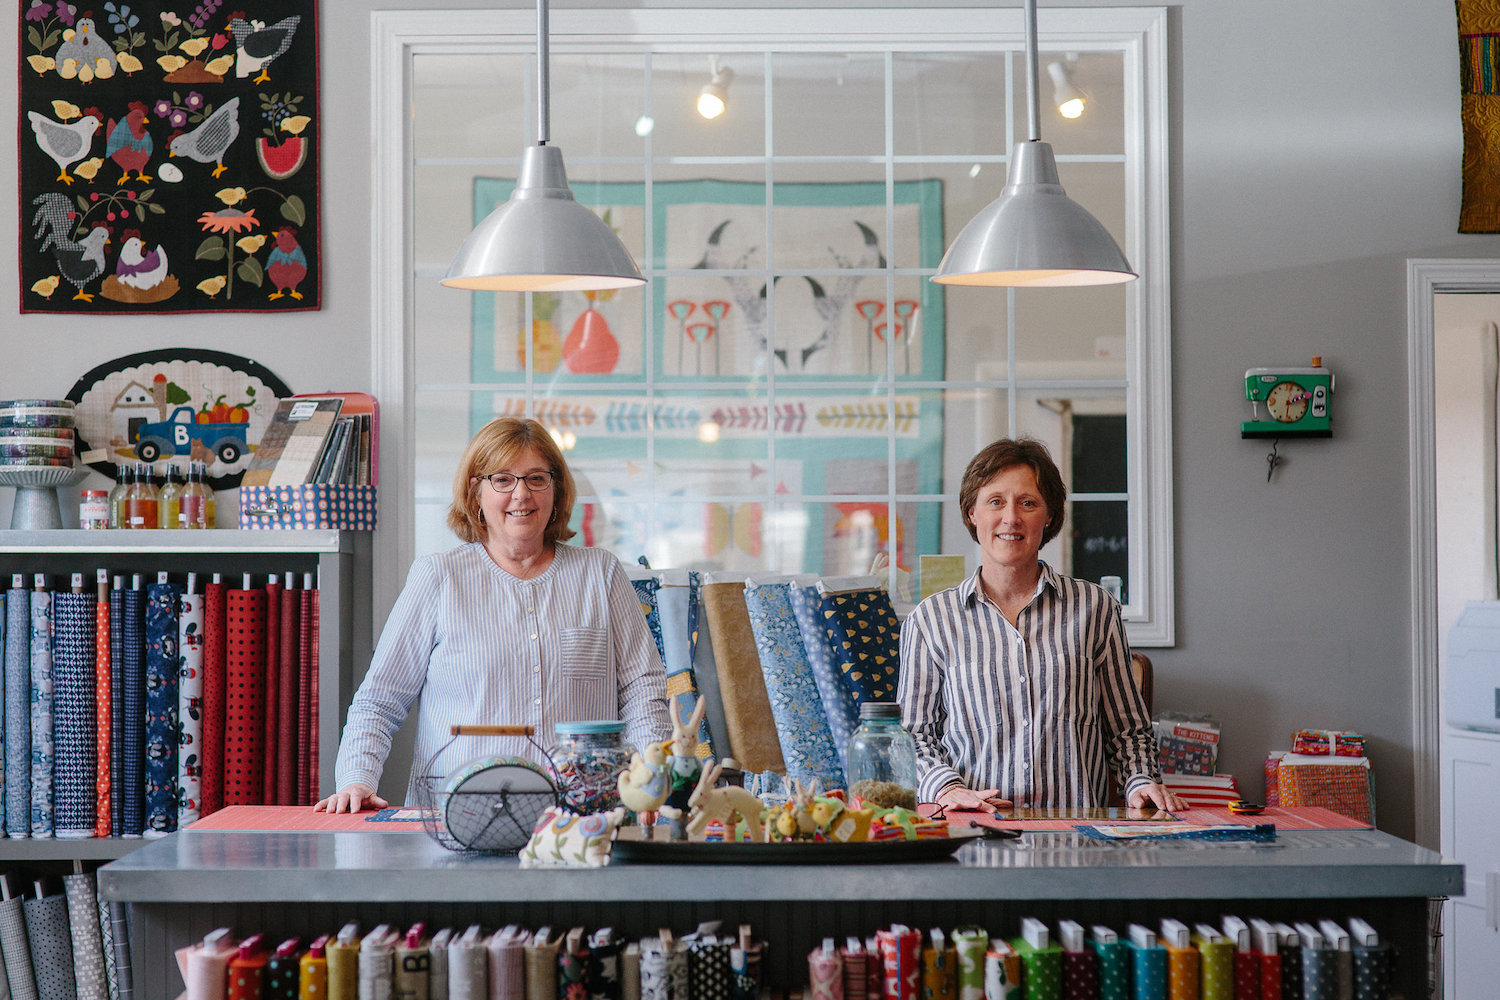 Sally Frey and Jacque Becker, co-owners of Stitch in Ferndale